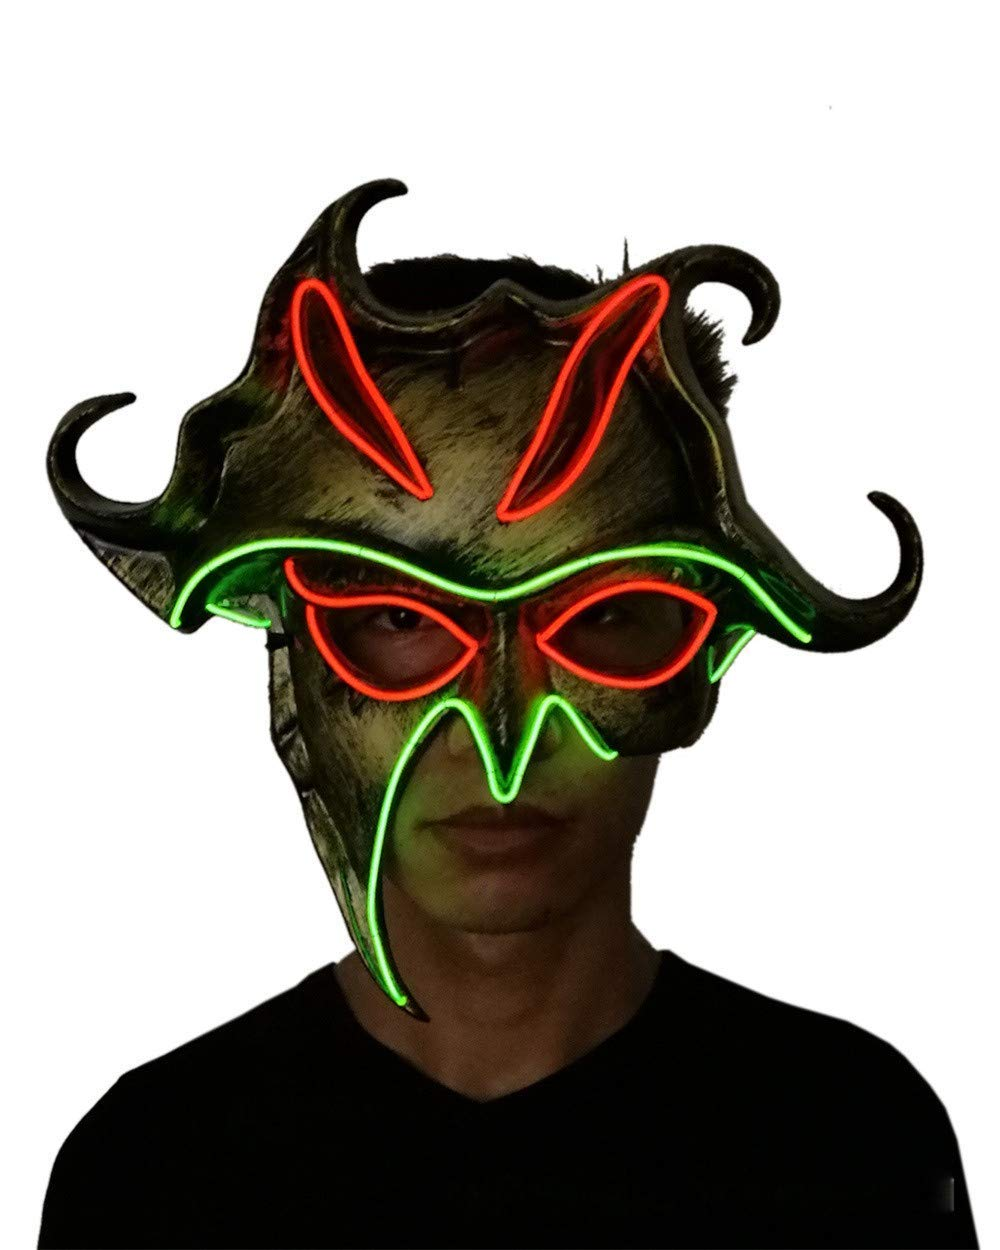 Aobiny Halloween Mask LED Masks Glow Scary Mask Light Up Cosplay Sun God Mask